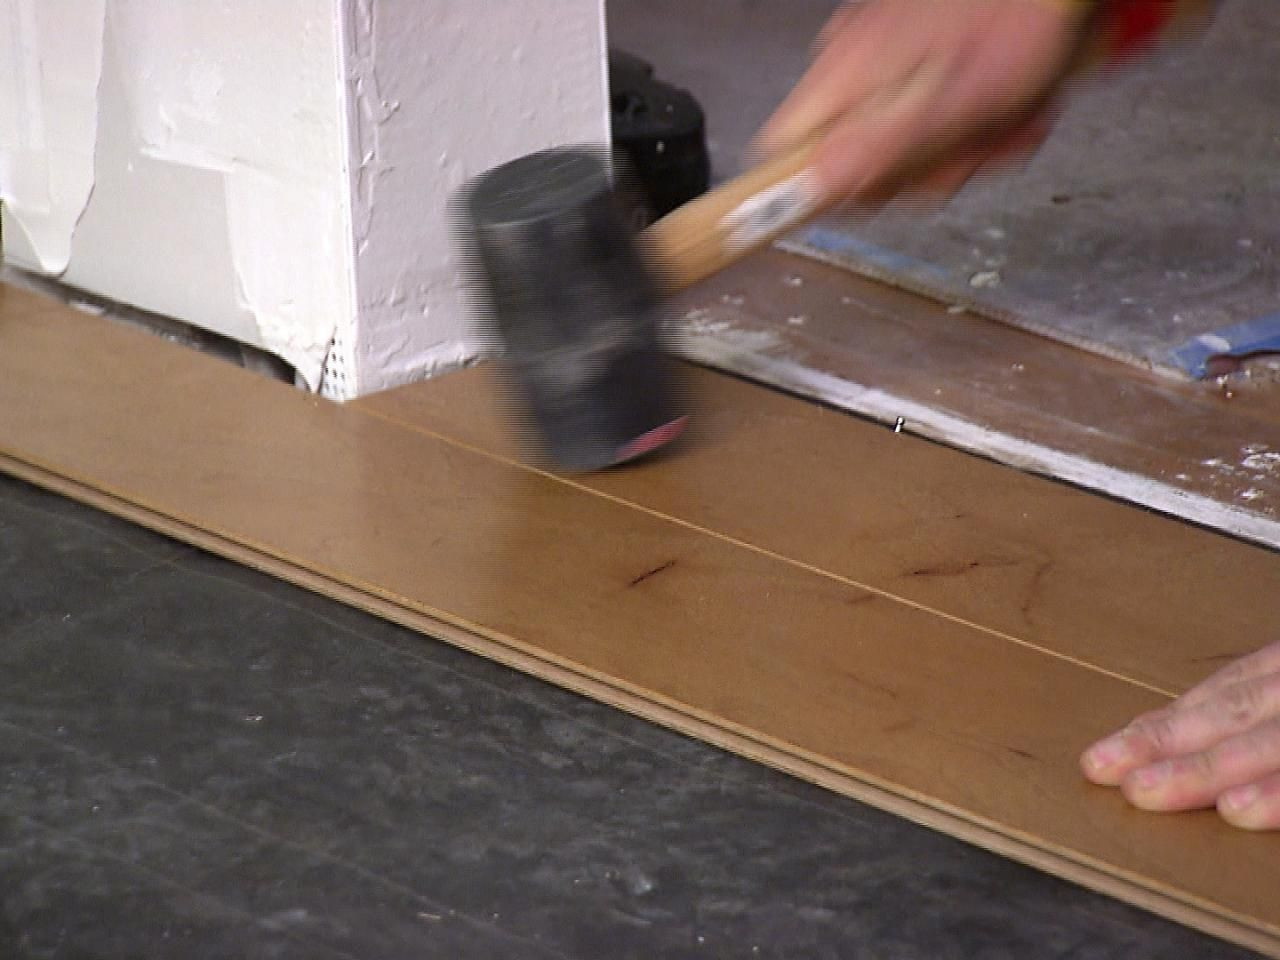 15 Stylish Hardwood Flooring Videos 2021 free download hardwood flooring videos of 40 how to lay laminate flooring video ideas within how to install an engineered hardwood floor how tos inspiration of how to lay laminate flooring video of how to